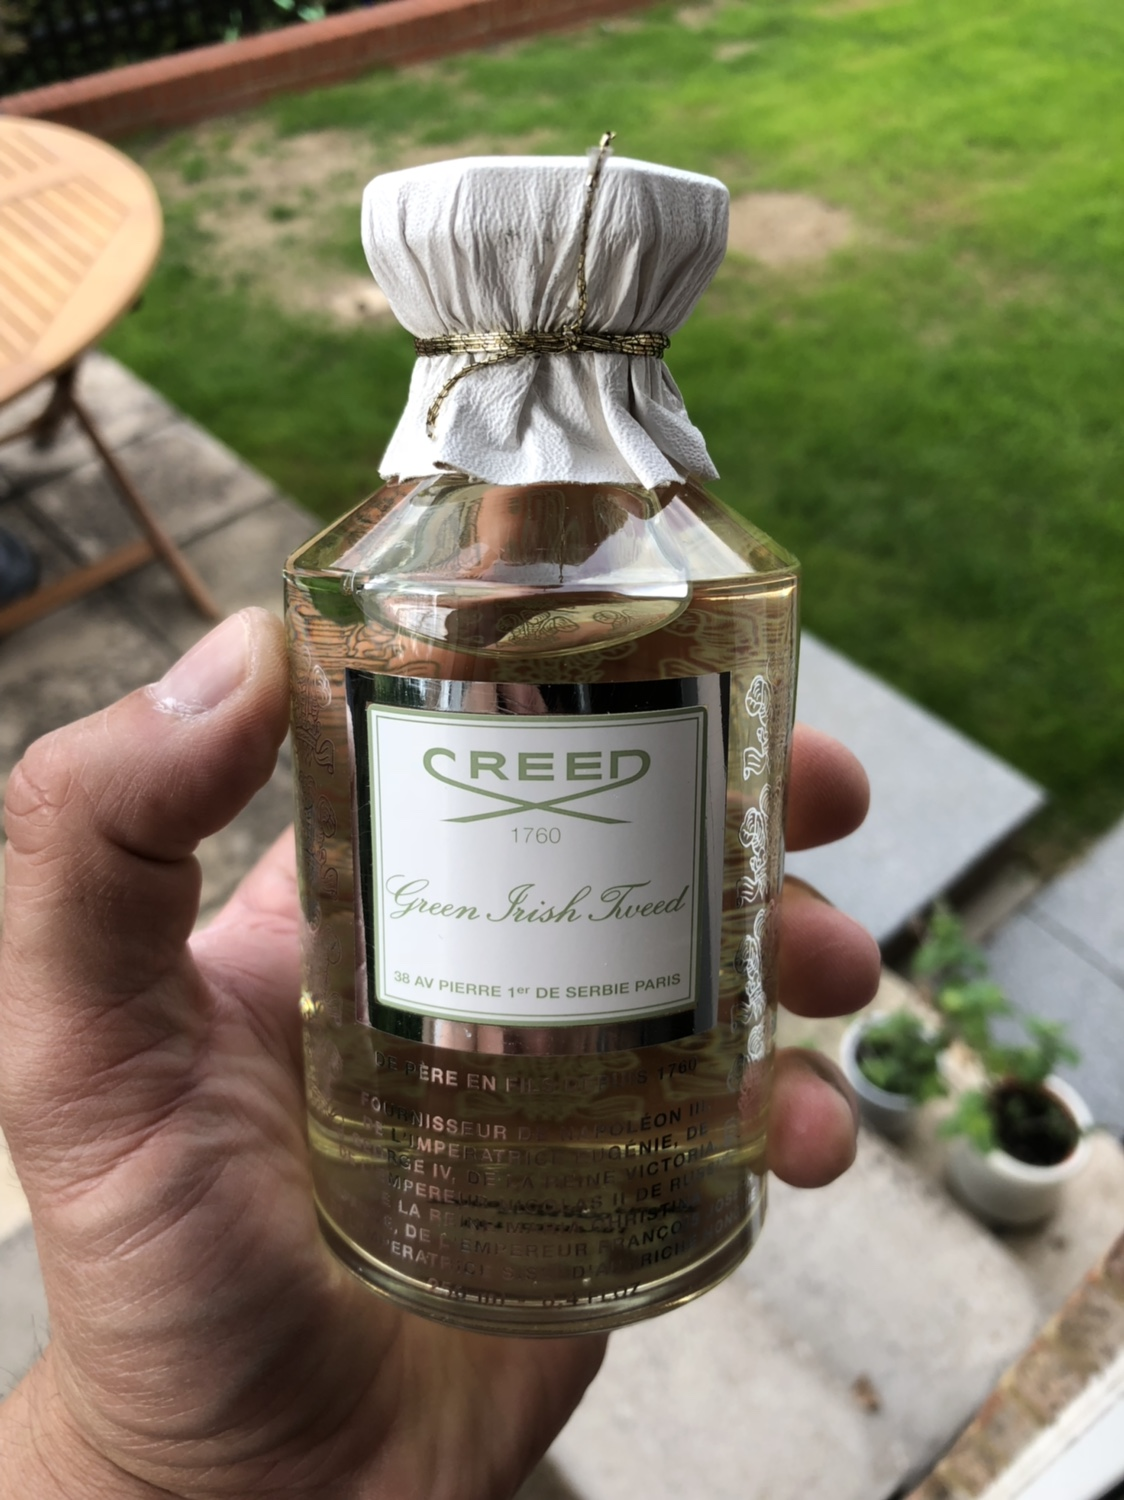 Does Anybody Else Have A Creed Cologne Problem Page 2 Rolex Casablanca Deodorant Roll On Dark Green For Men 50ml Also Pictures Well With My Watches